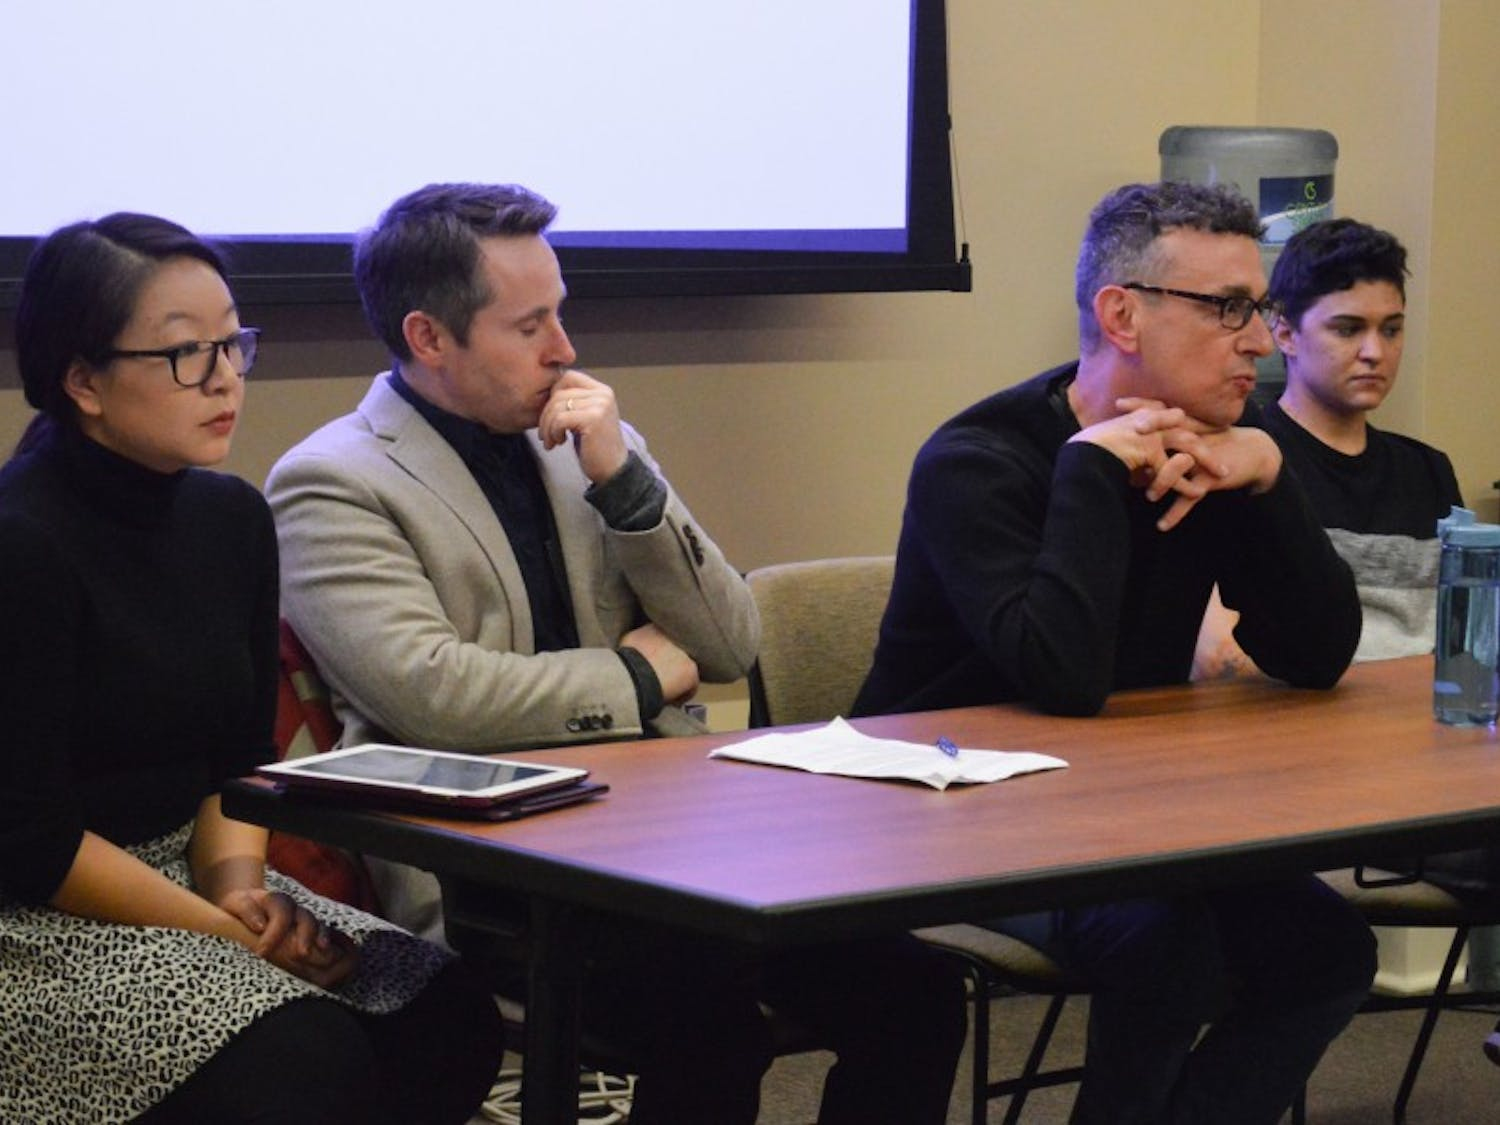 Graduate students Wendy Li andCV Vitolo-Haddad, along withprofessors Don Moynihan and Robert Asen, spoke as part of a panel discussion about the grad student tax increase Wednesday.